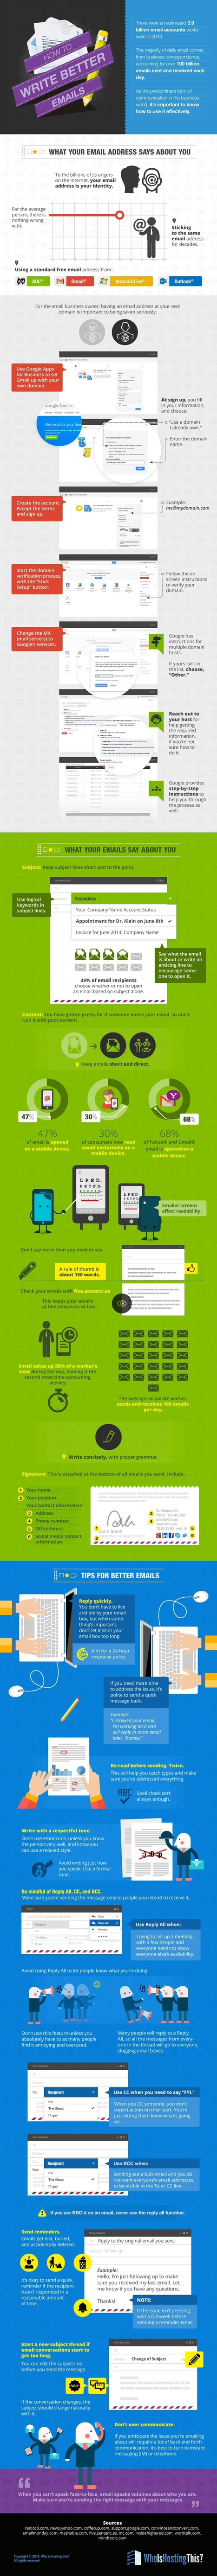 The Art of Writing Better Emails [INFOGRAPHIC]   MarketingHits   Scoop.it